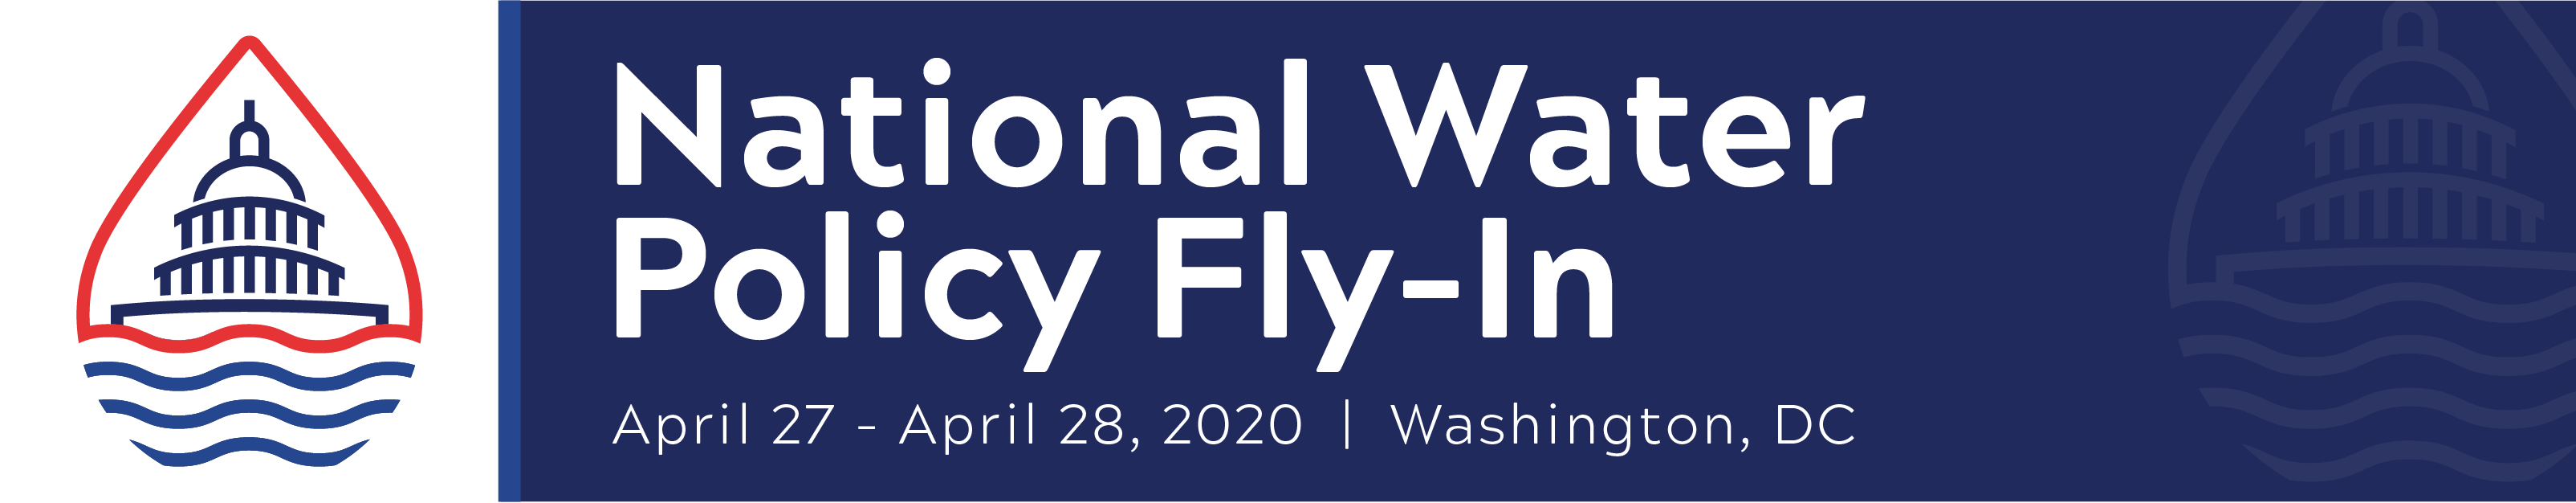 2020 National Water Policy Fly-In